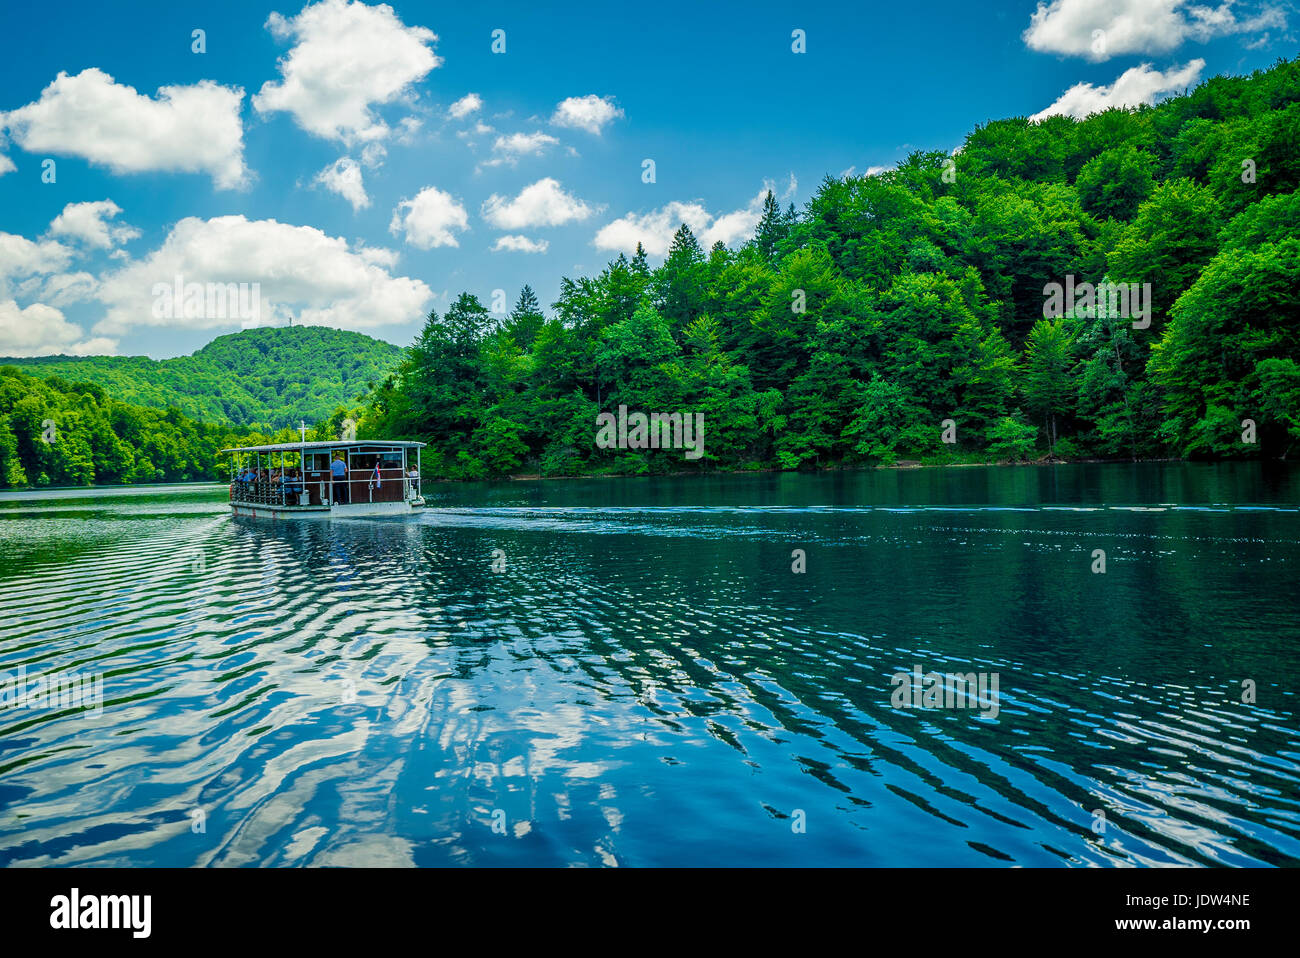 The largest lake at Plitvice Lakes National Park connects the upper and lower lakes - Stock Image